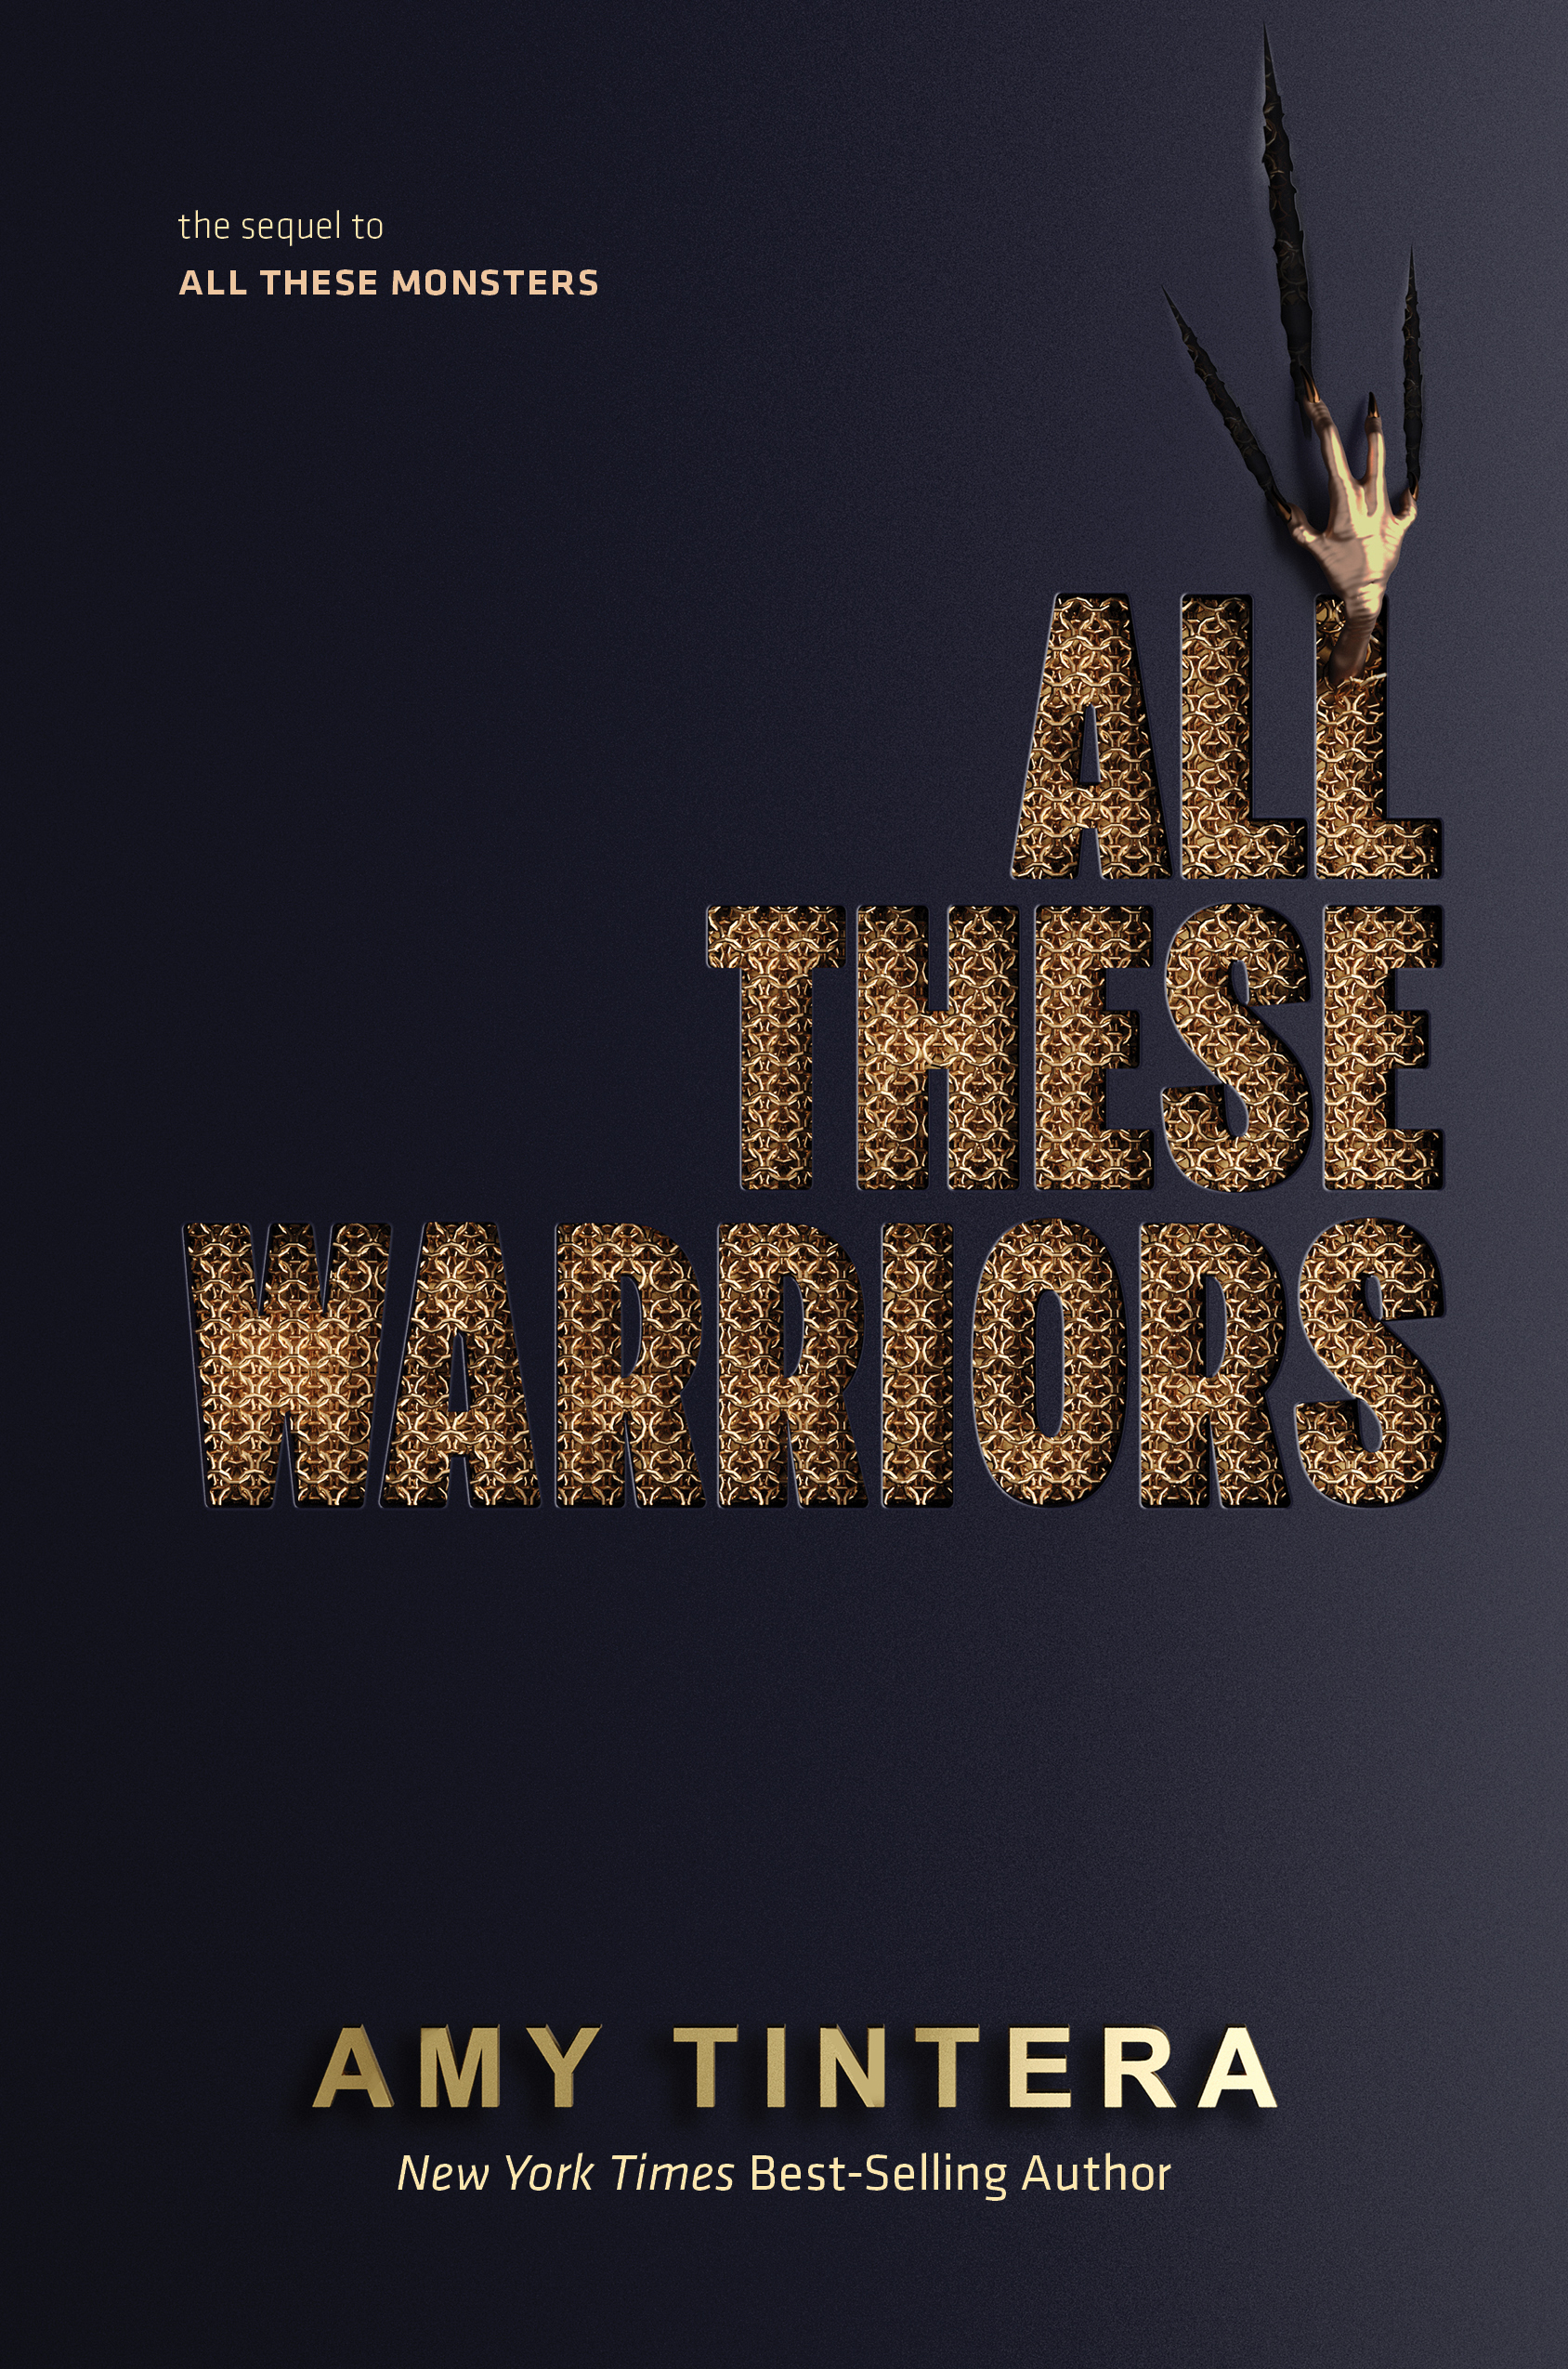 All These Warriors (Monsters, #2)